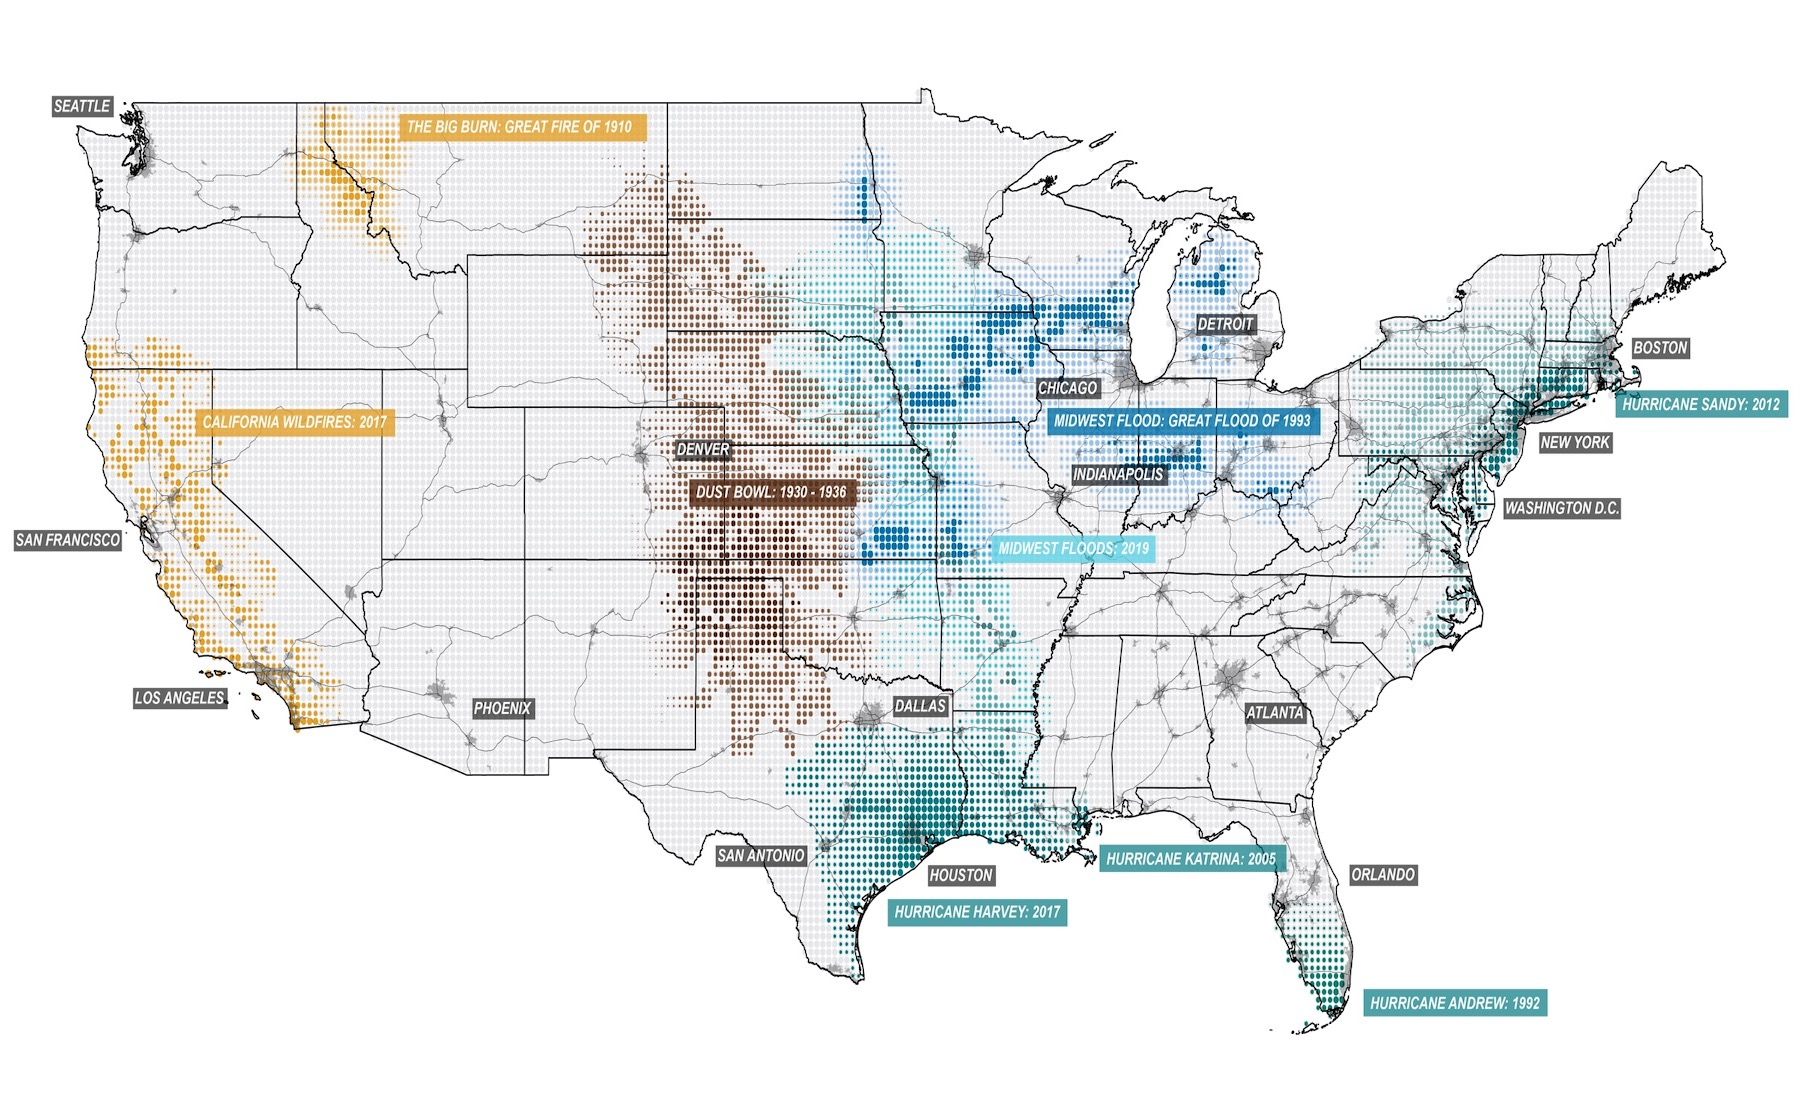 Map showing severe US environmental disasters in recent history from the McHard Center Atlas for a Green New Deal